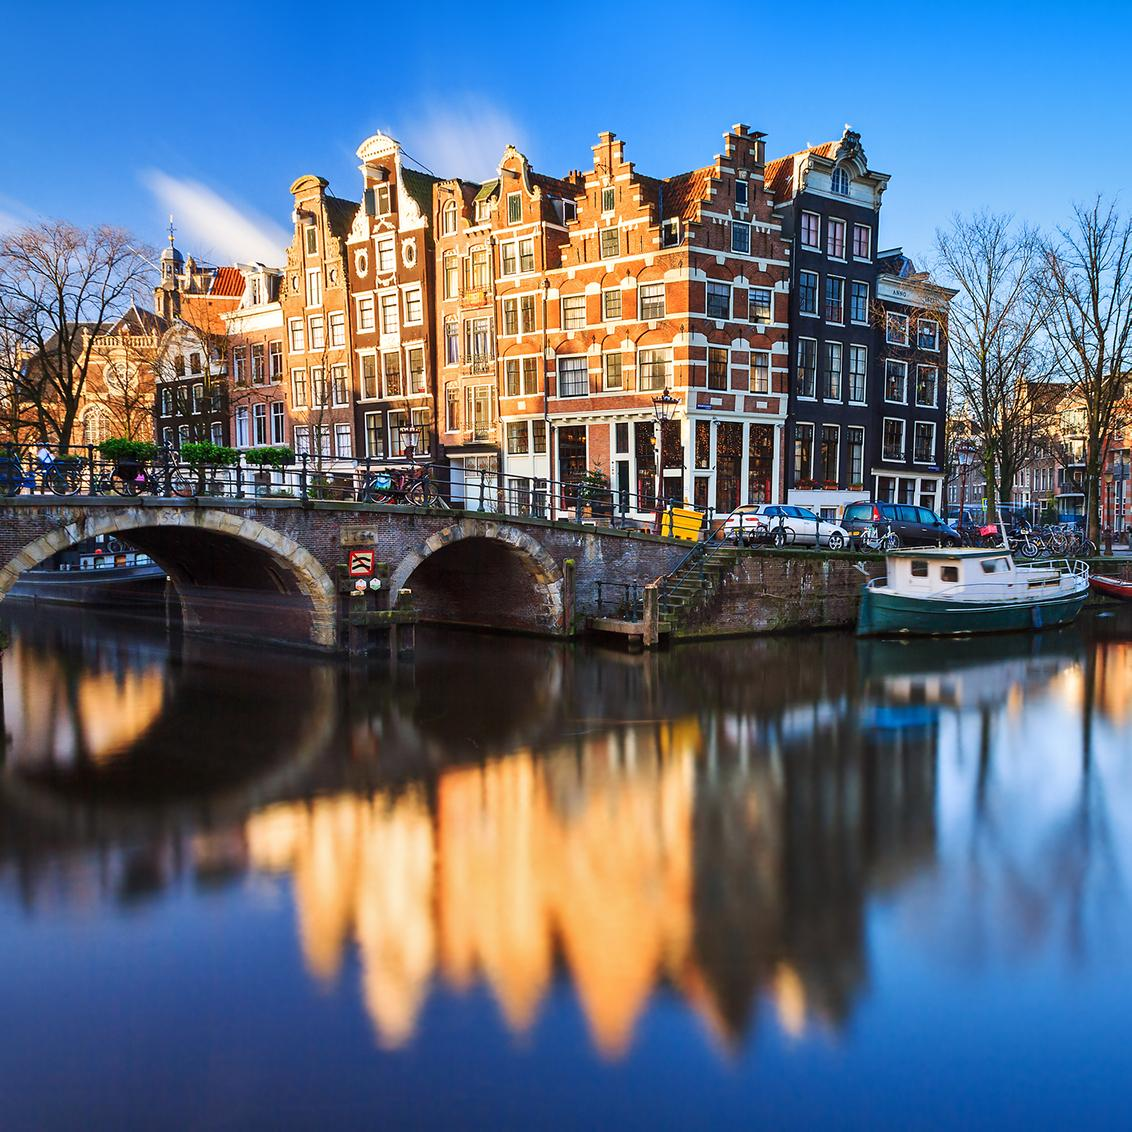 Views of Amsterdam's canals and riverways